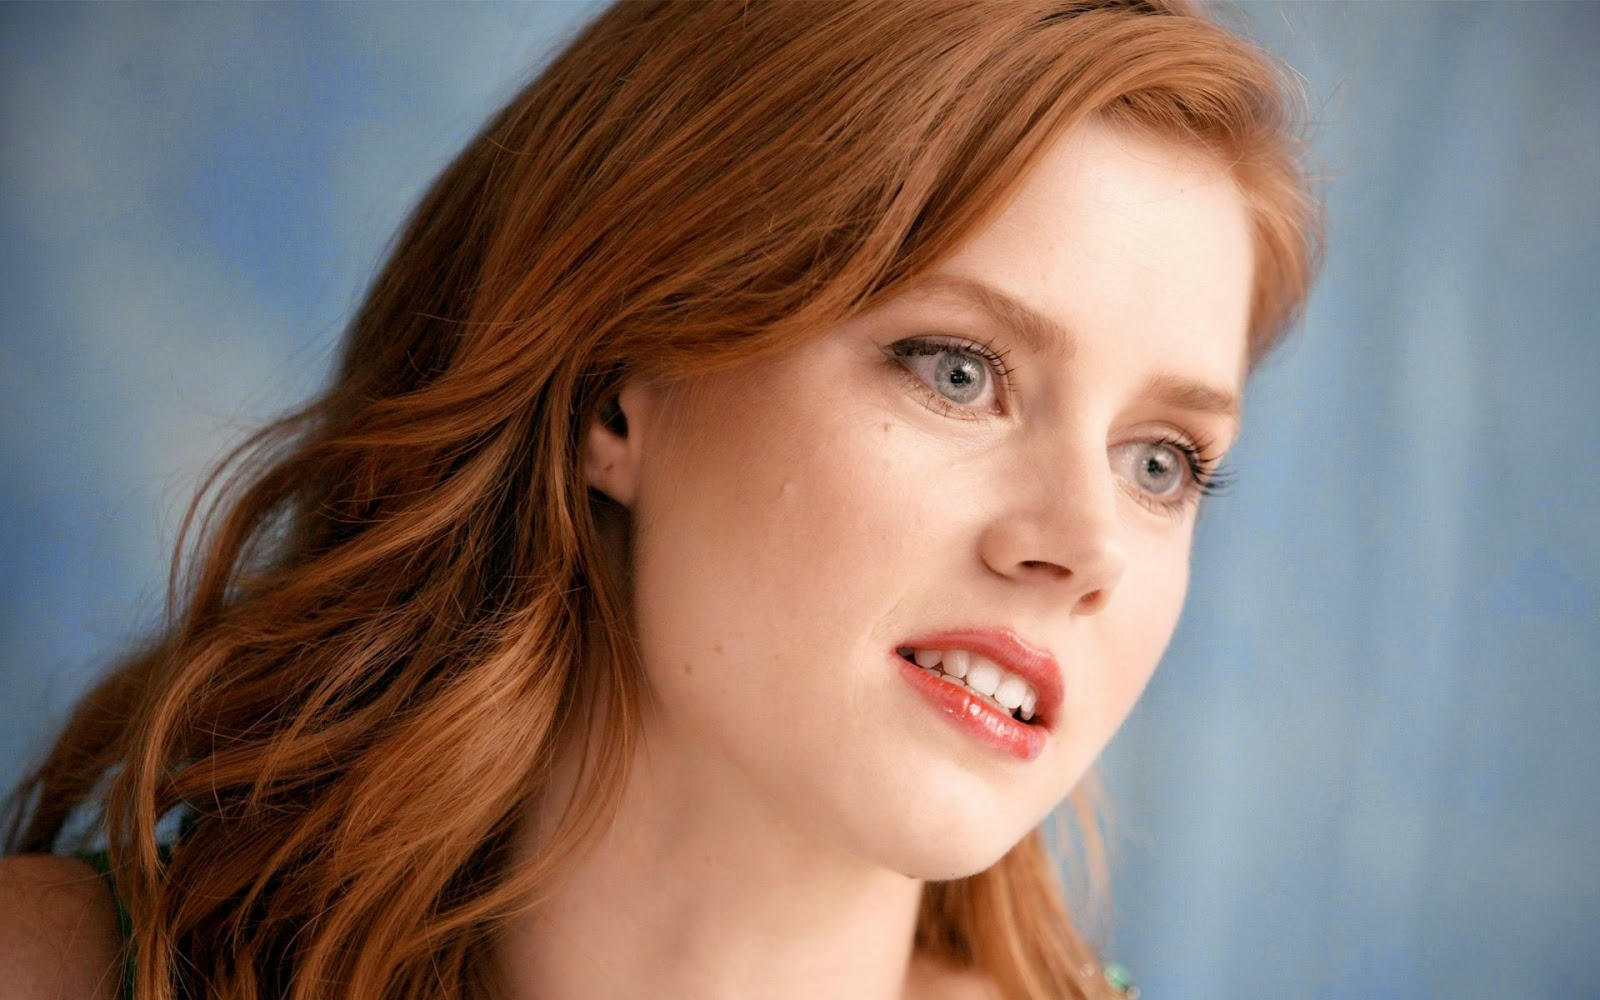 Amy adams cute face super high quality wallpapers